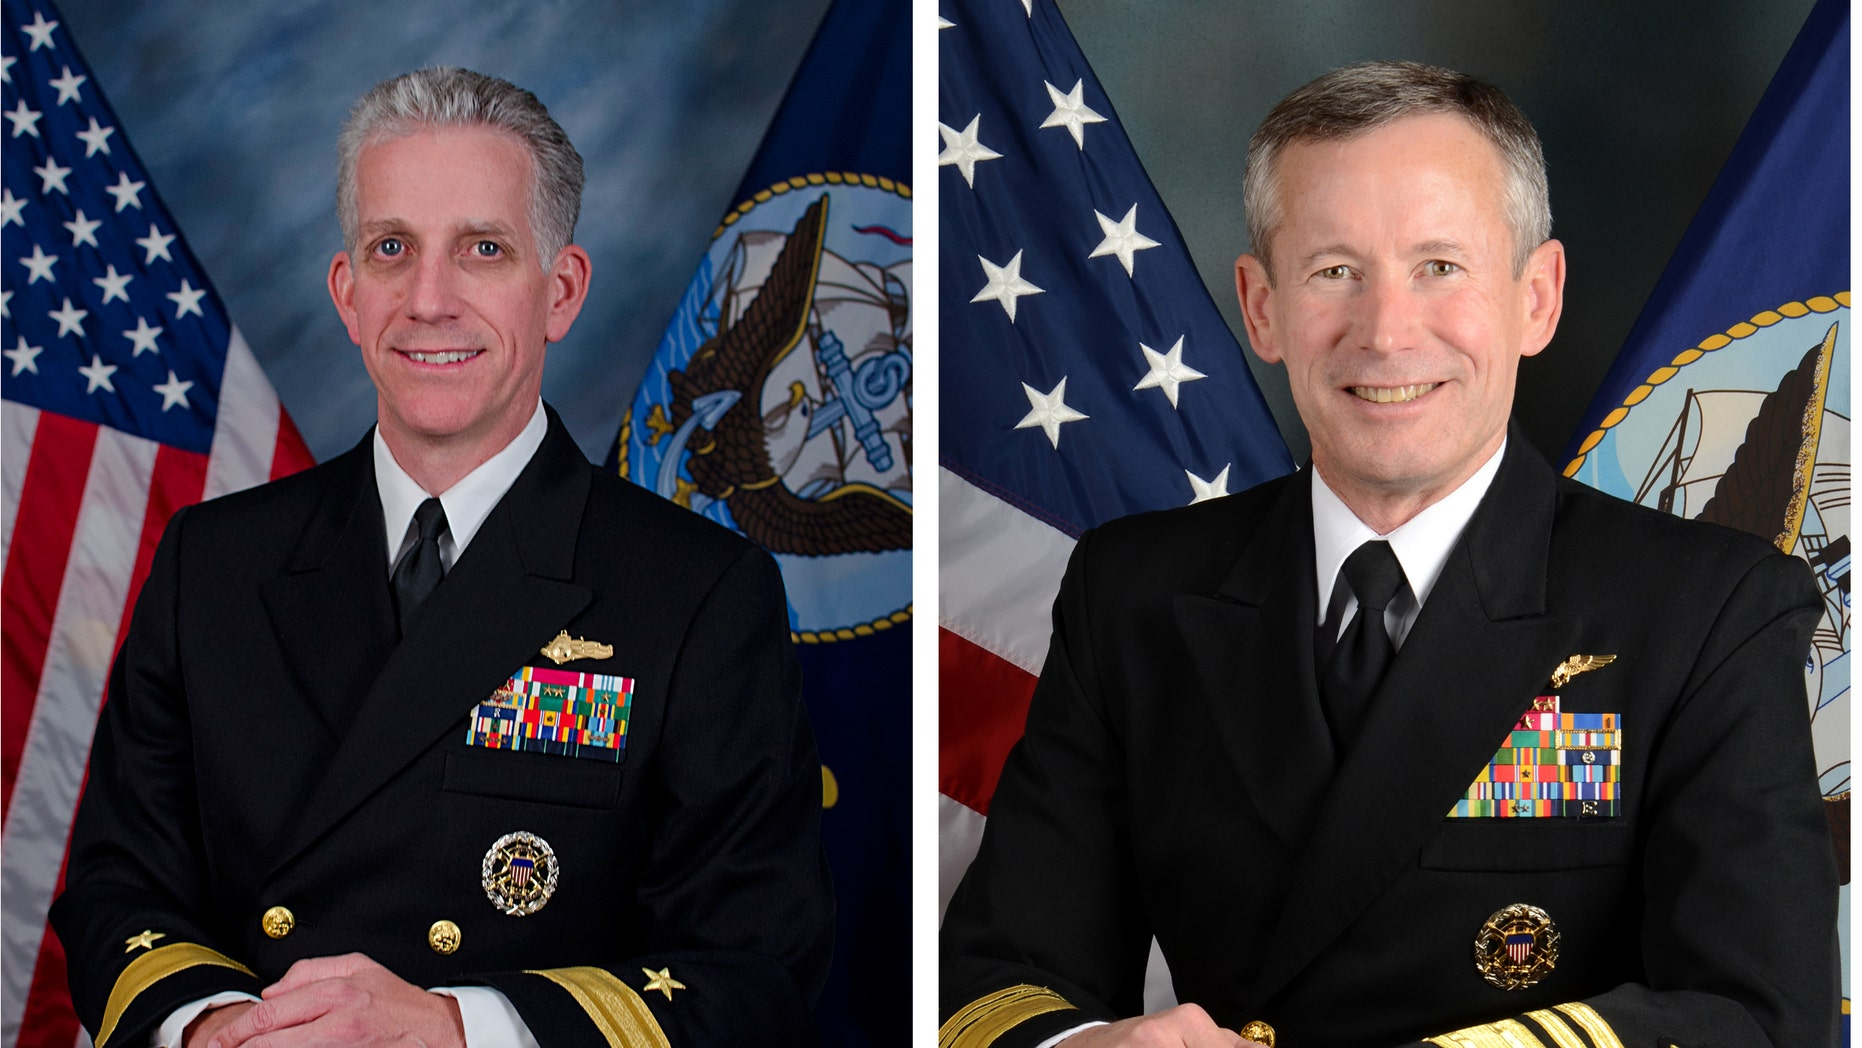 ADDS DATE OF ANNOUNCEMENT - This undated photo provided by the U.S. Navy shows Rear Adm. Bruce F. Loveless, left, and Vice Adm. Ted Branch in an offical portraits. The Navy announced Friday night Nov. 8, 2013 it has suspended access to classified material of Rear Adm. Bruce F. Loveless and Adm. Ted Branch in connection with a massive bribery scheme in Asia involving prostitutes and luxury travel. (AP Photo/US Navy)